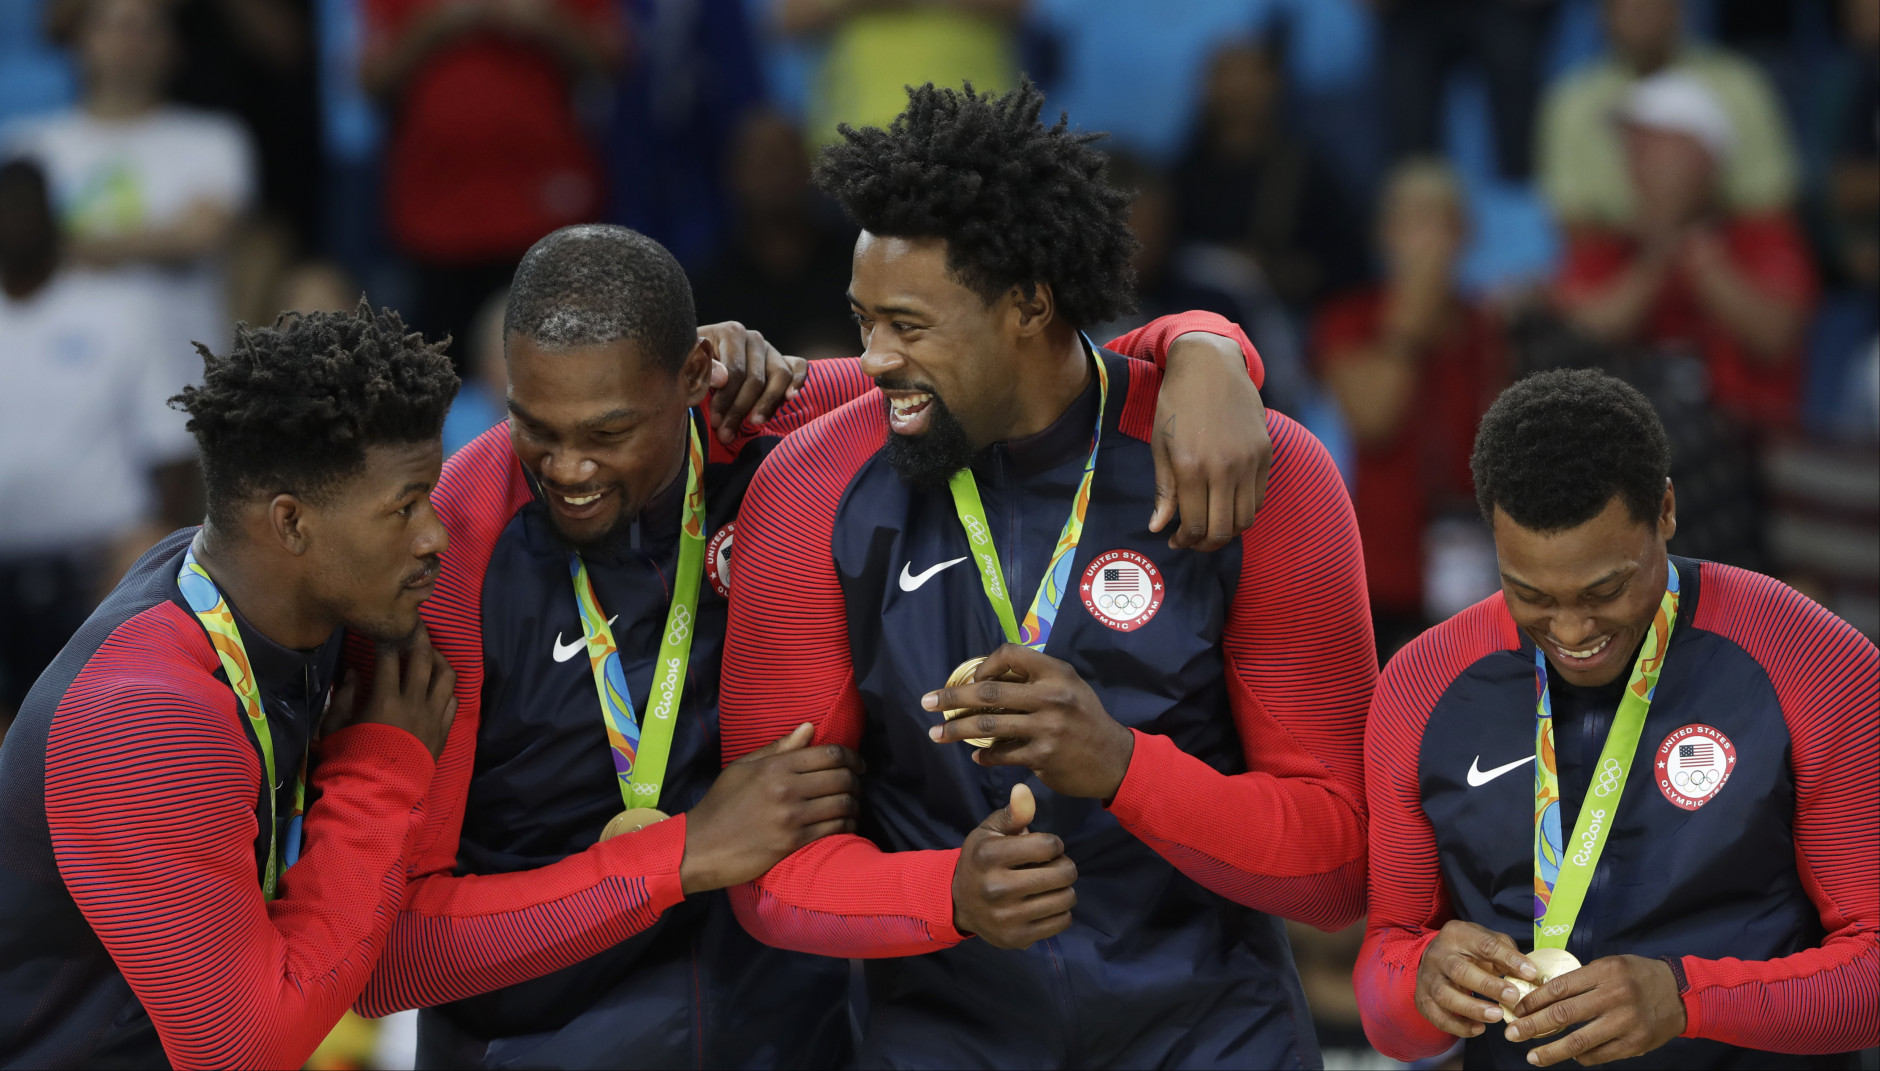 United States' Jimmy Butler, from left, Kevin Durant, DeAndre Jordan and Kyle Lowry stand on the podium with their gold medals for men's basketball at the 2016 Summer Olympics in Rio de Janeiro, Brazil, Sunday, Aug. 21, 2016. (AP Photo/Eric Gay)